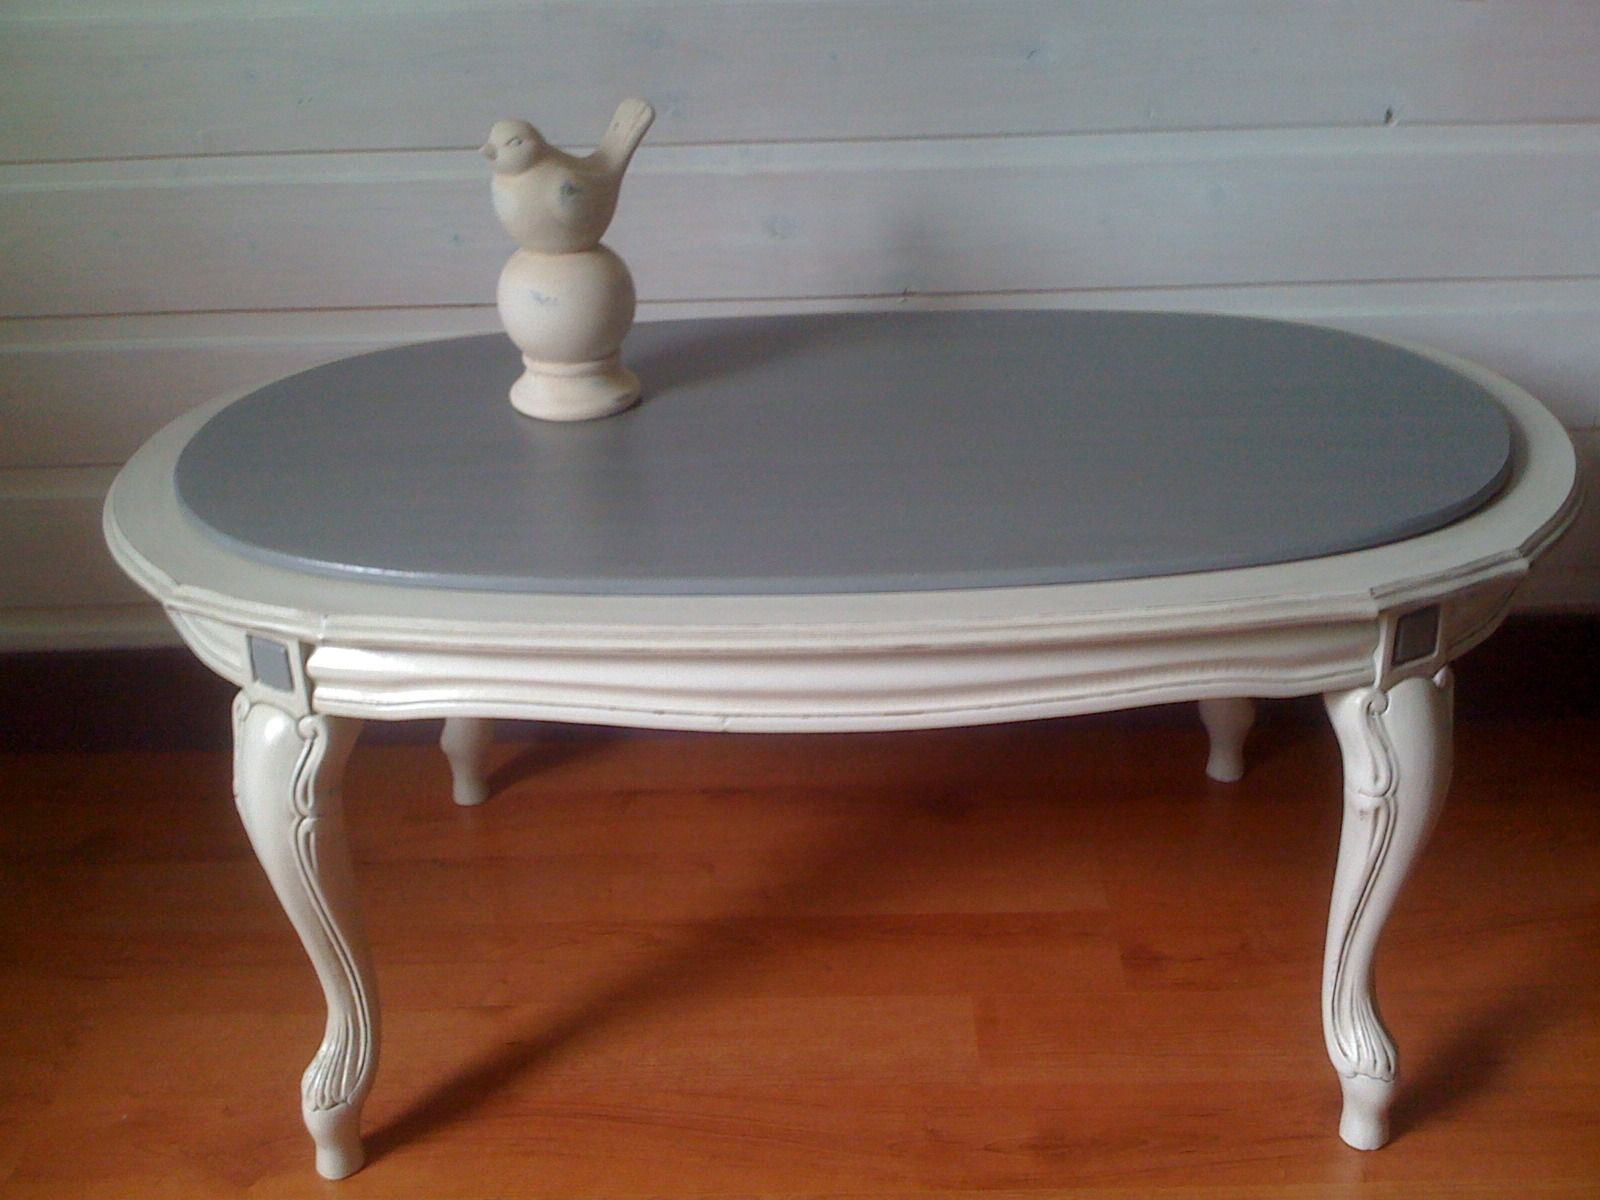 Table basse en marbre customiser - Atwebster.fr - Maison et mobilier